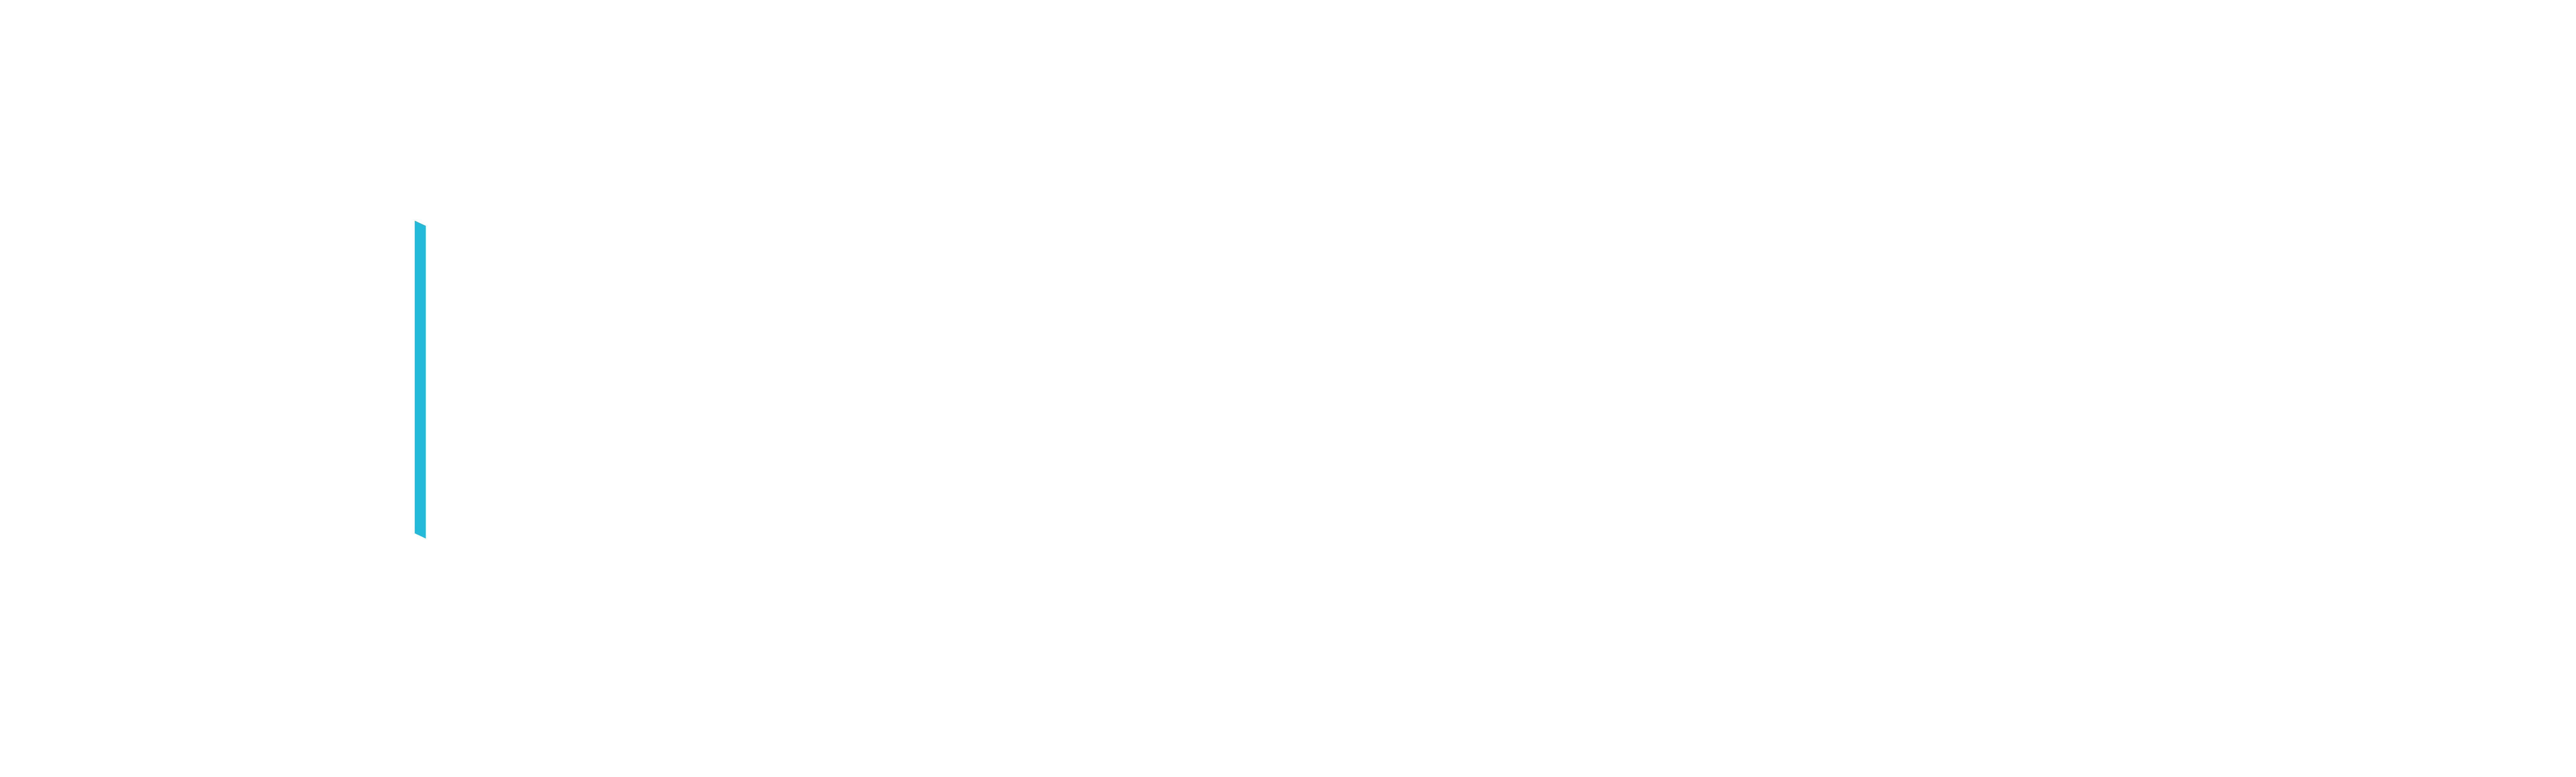 Department of Library and Documentation